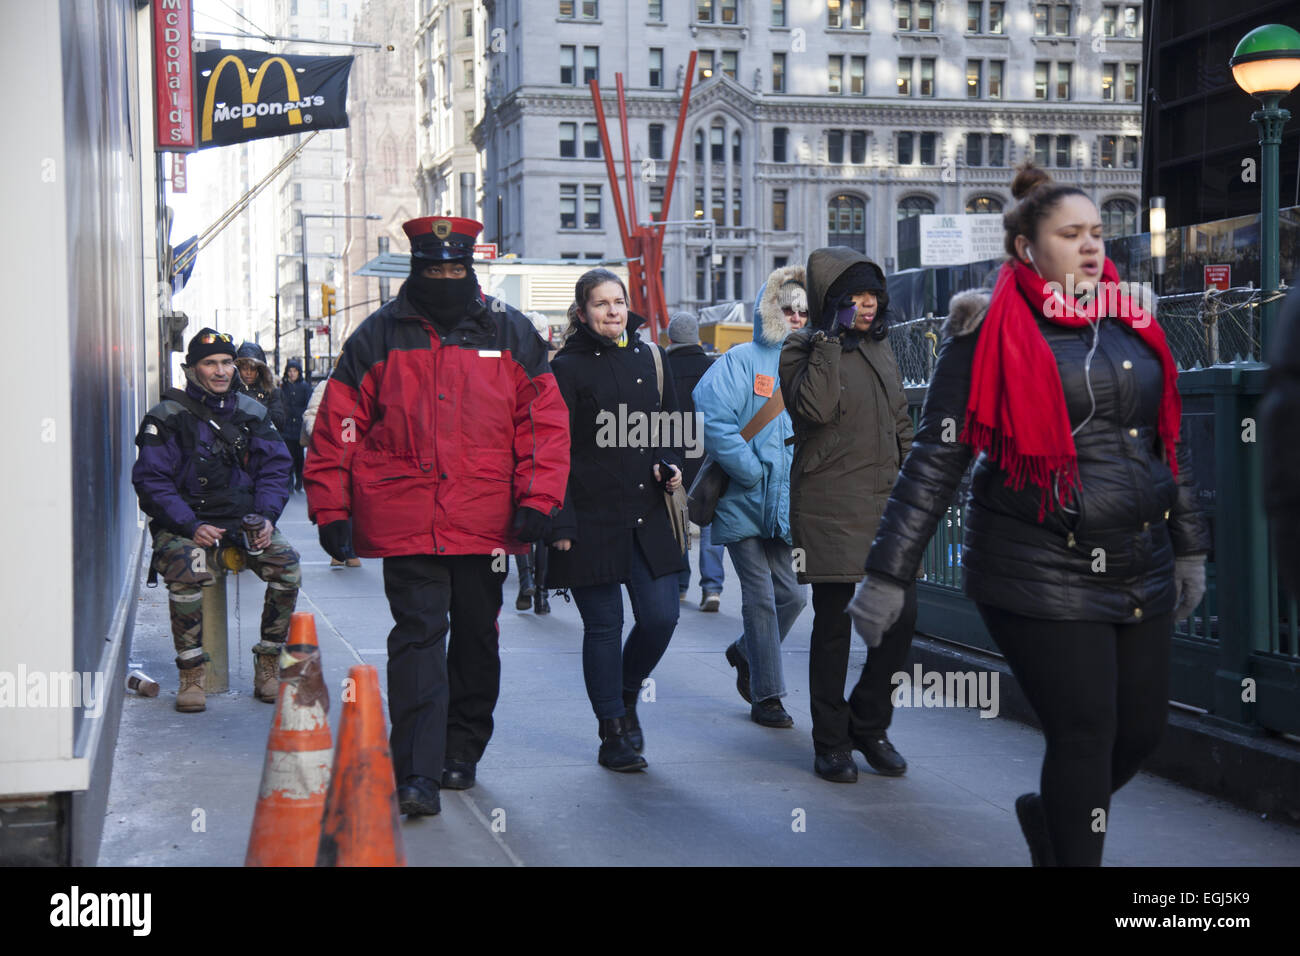 Pedestrians walk along lower Broadway in strong winds and freezing temperatures in New York City. - Stock Image